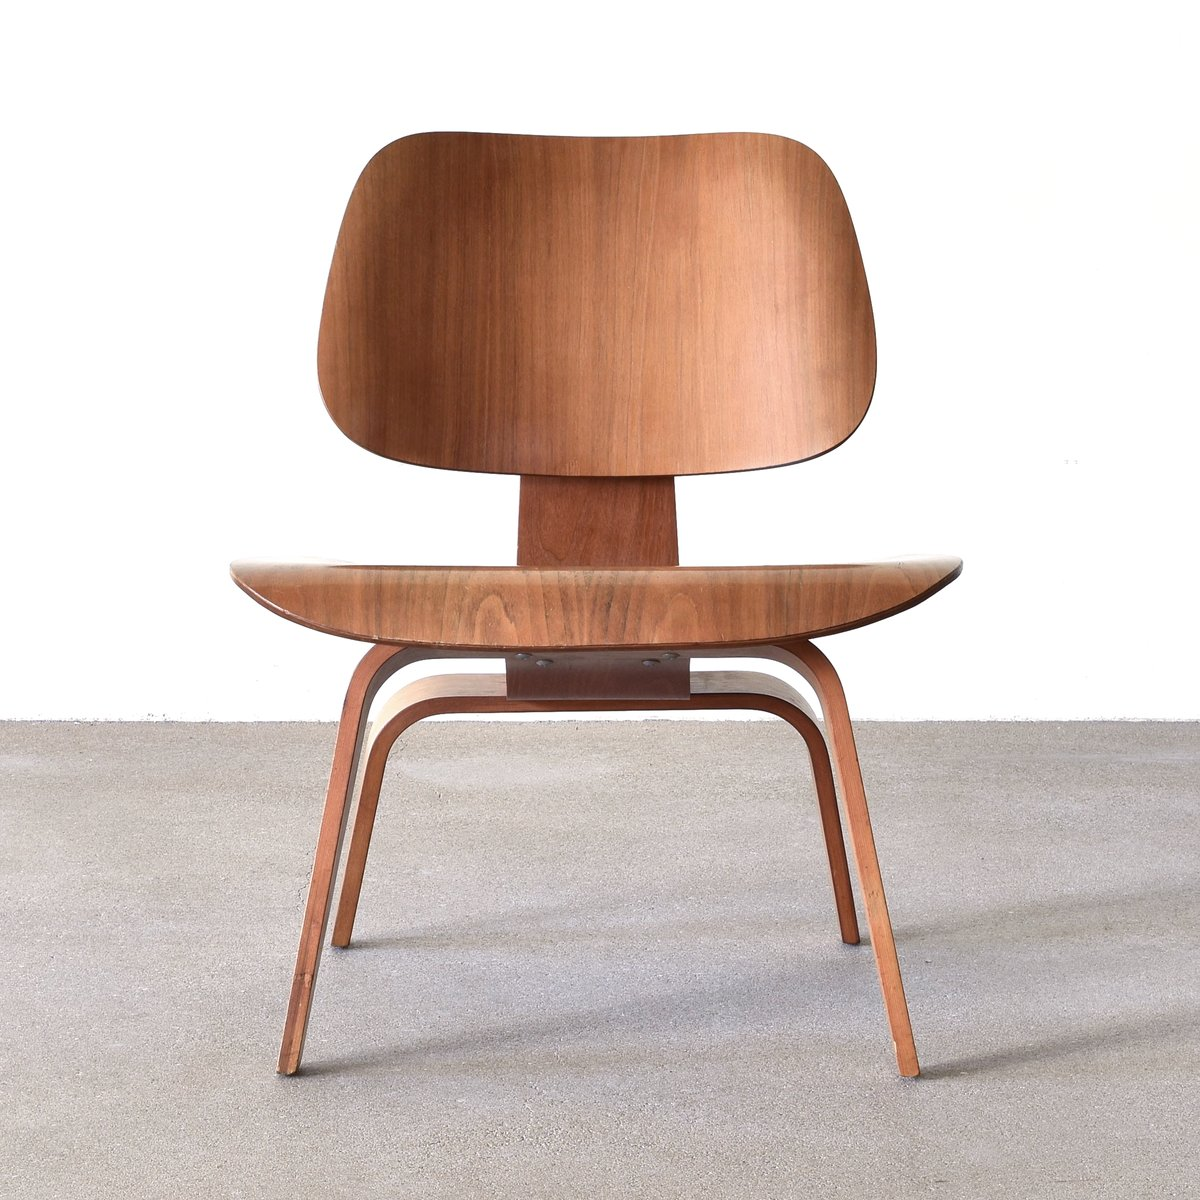 American lcw walnut lounge chair by charles ray eames for herman miller - Herman miller chair eames ...